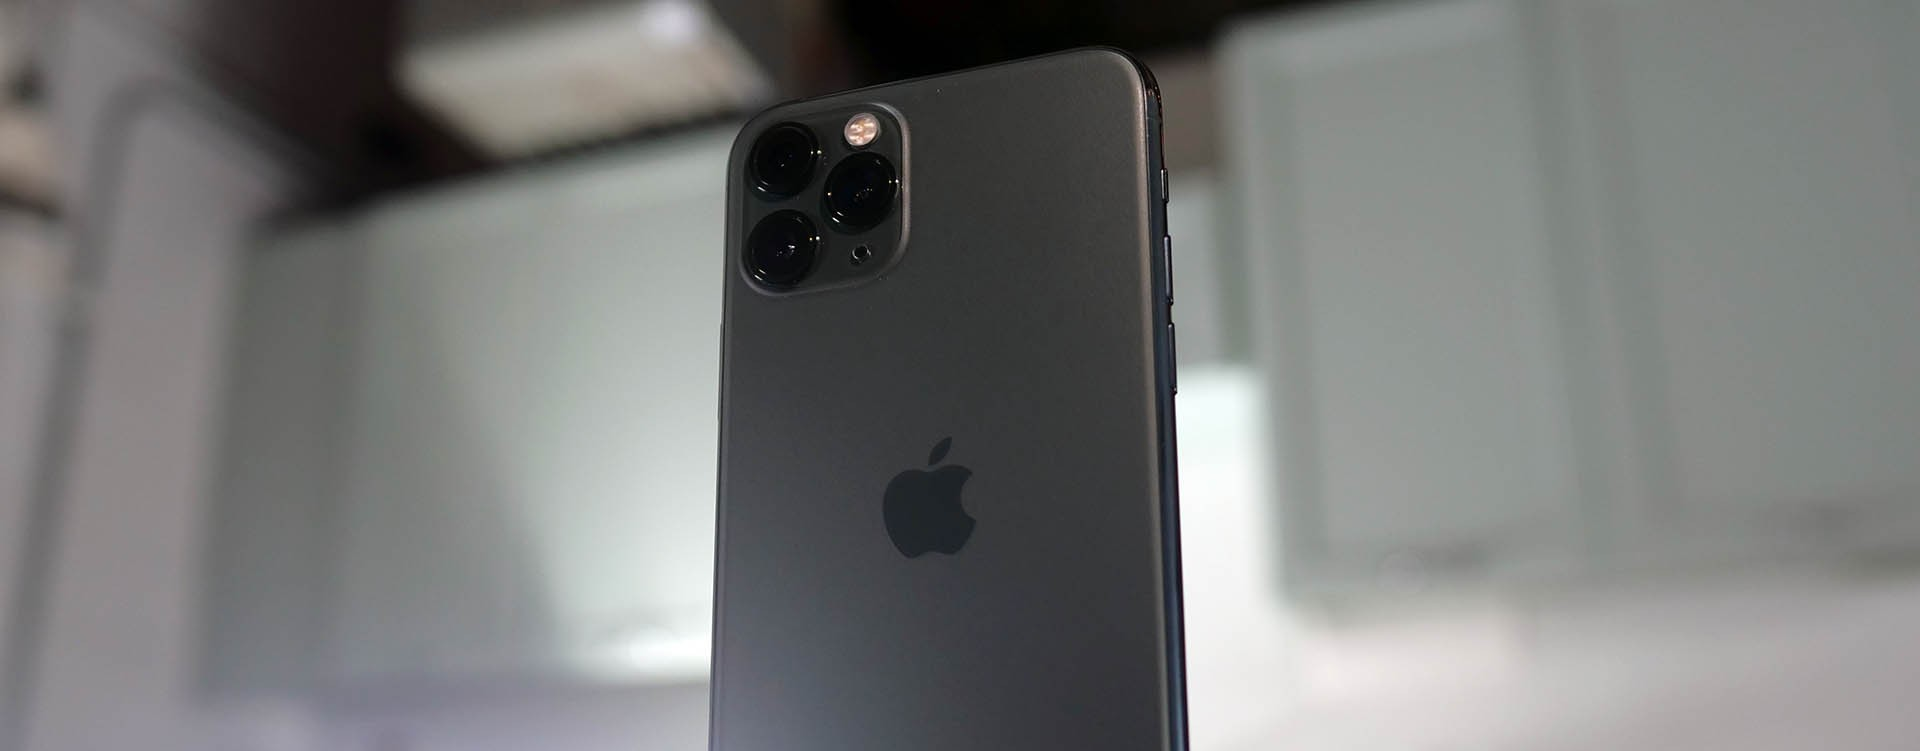 iphone11pro pocketnow